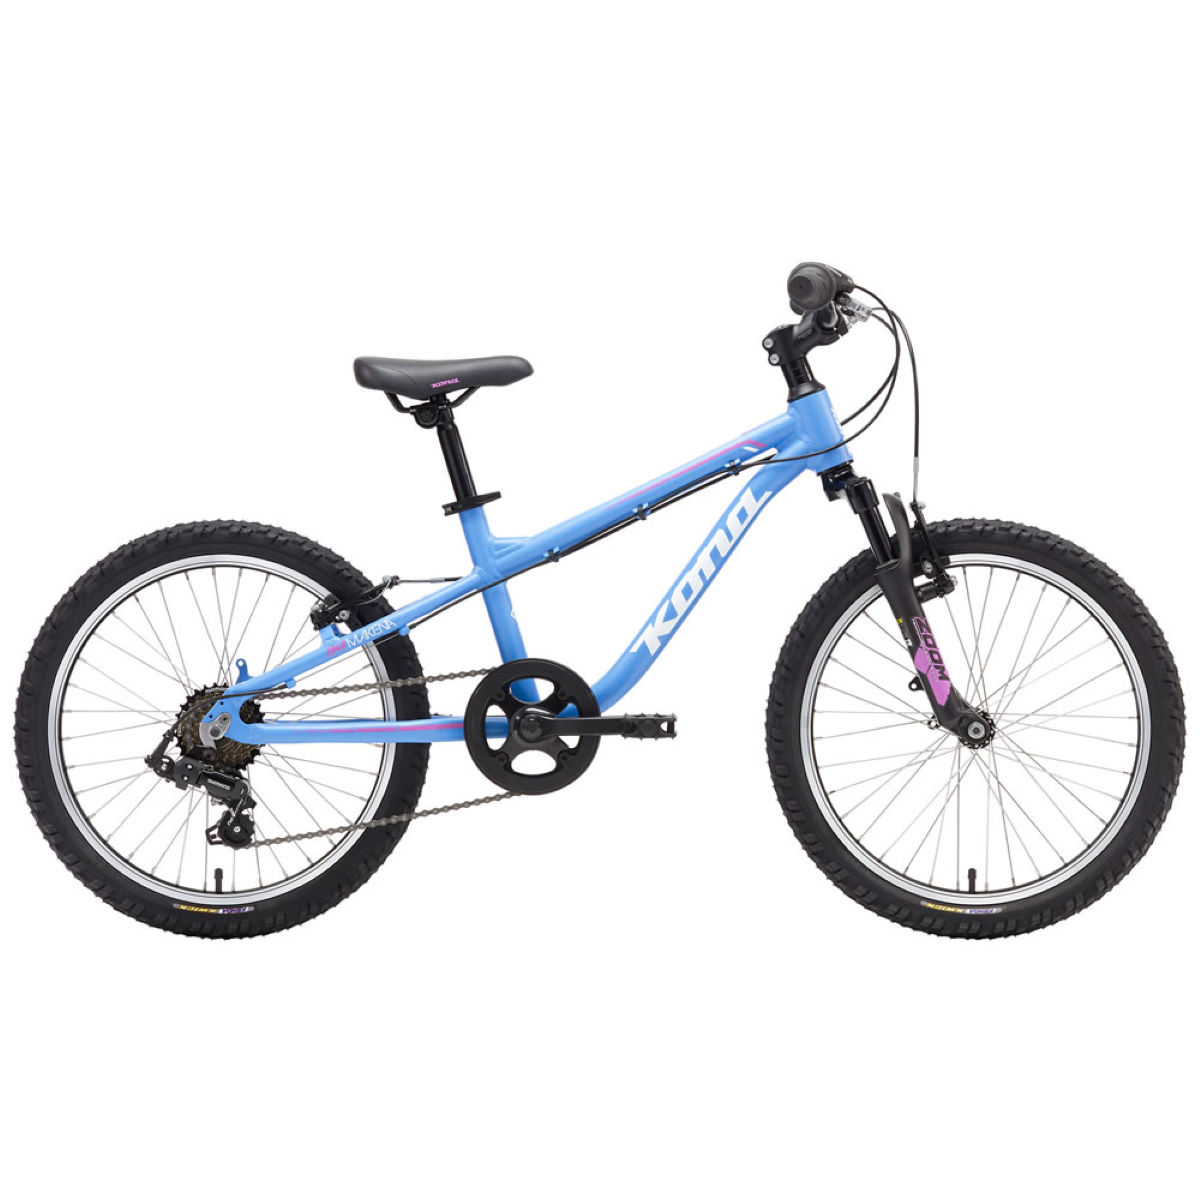 Kona Makena (2017) Kids Bike   Kids Bikes  Over 7